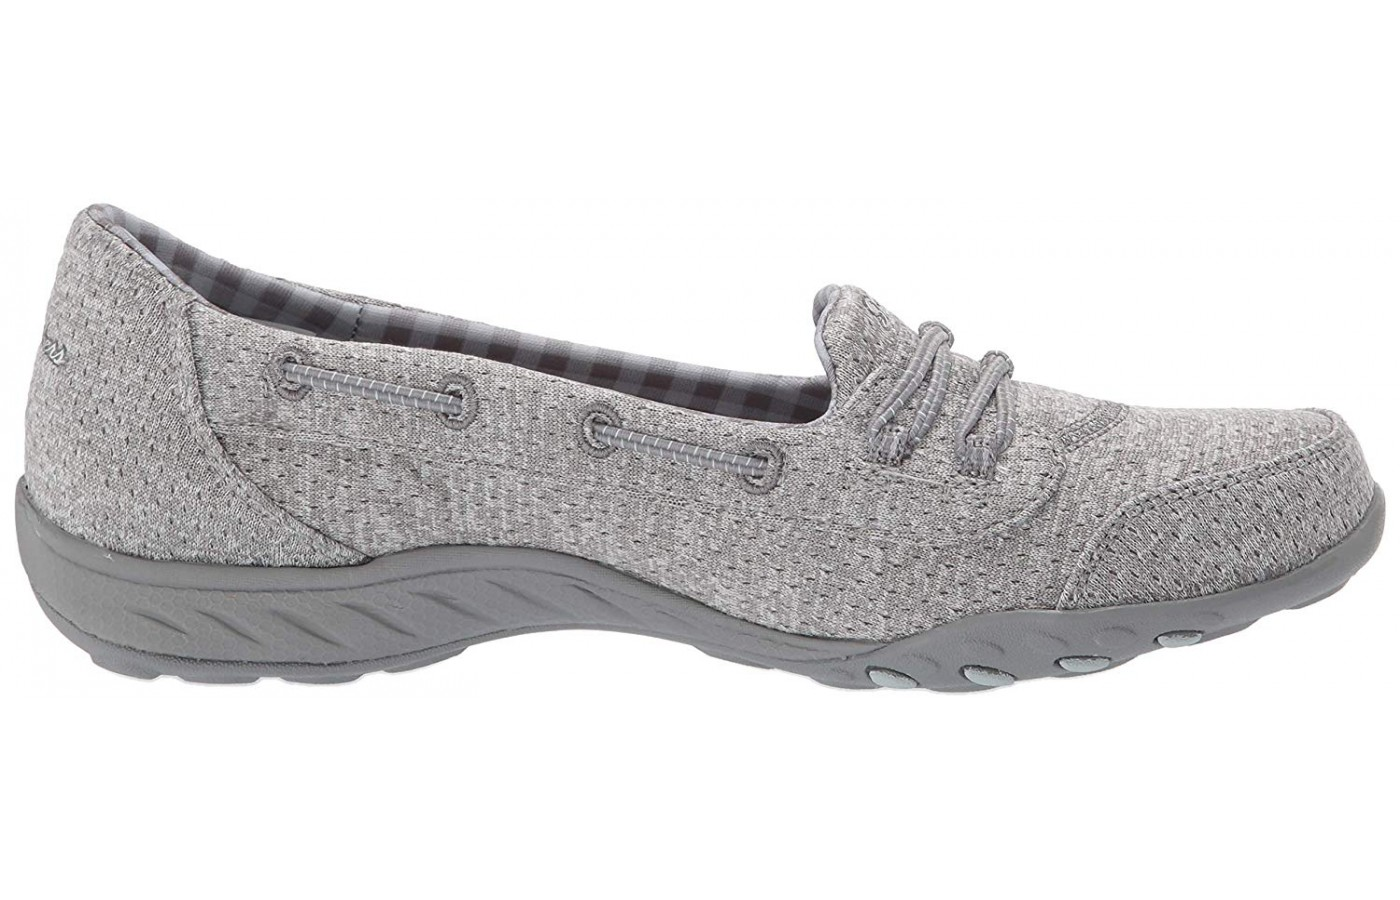 Skechers Breathe Easy - Good Influence Outsole